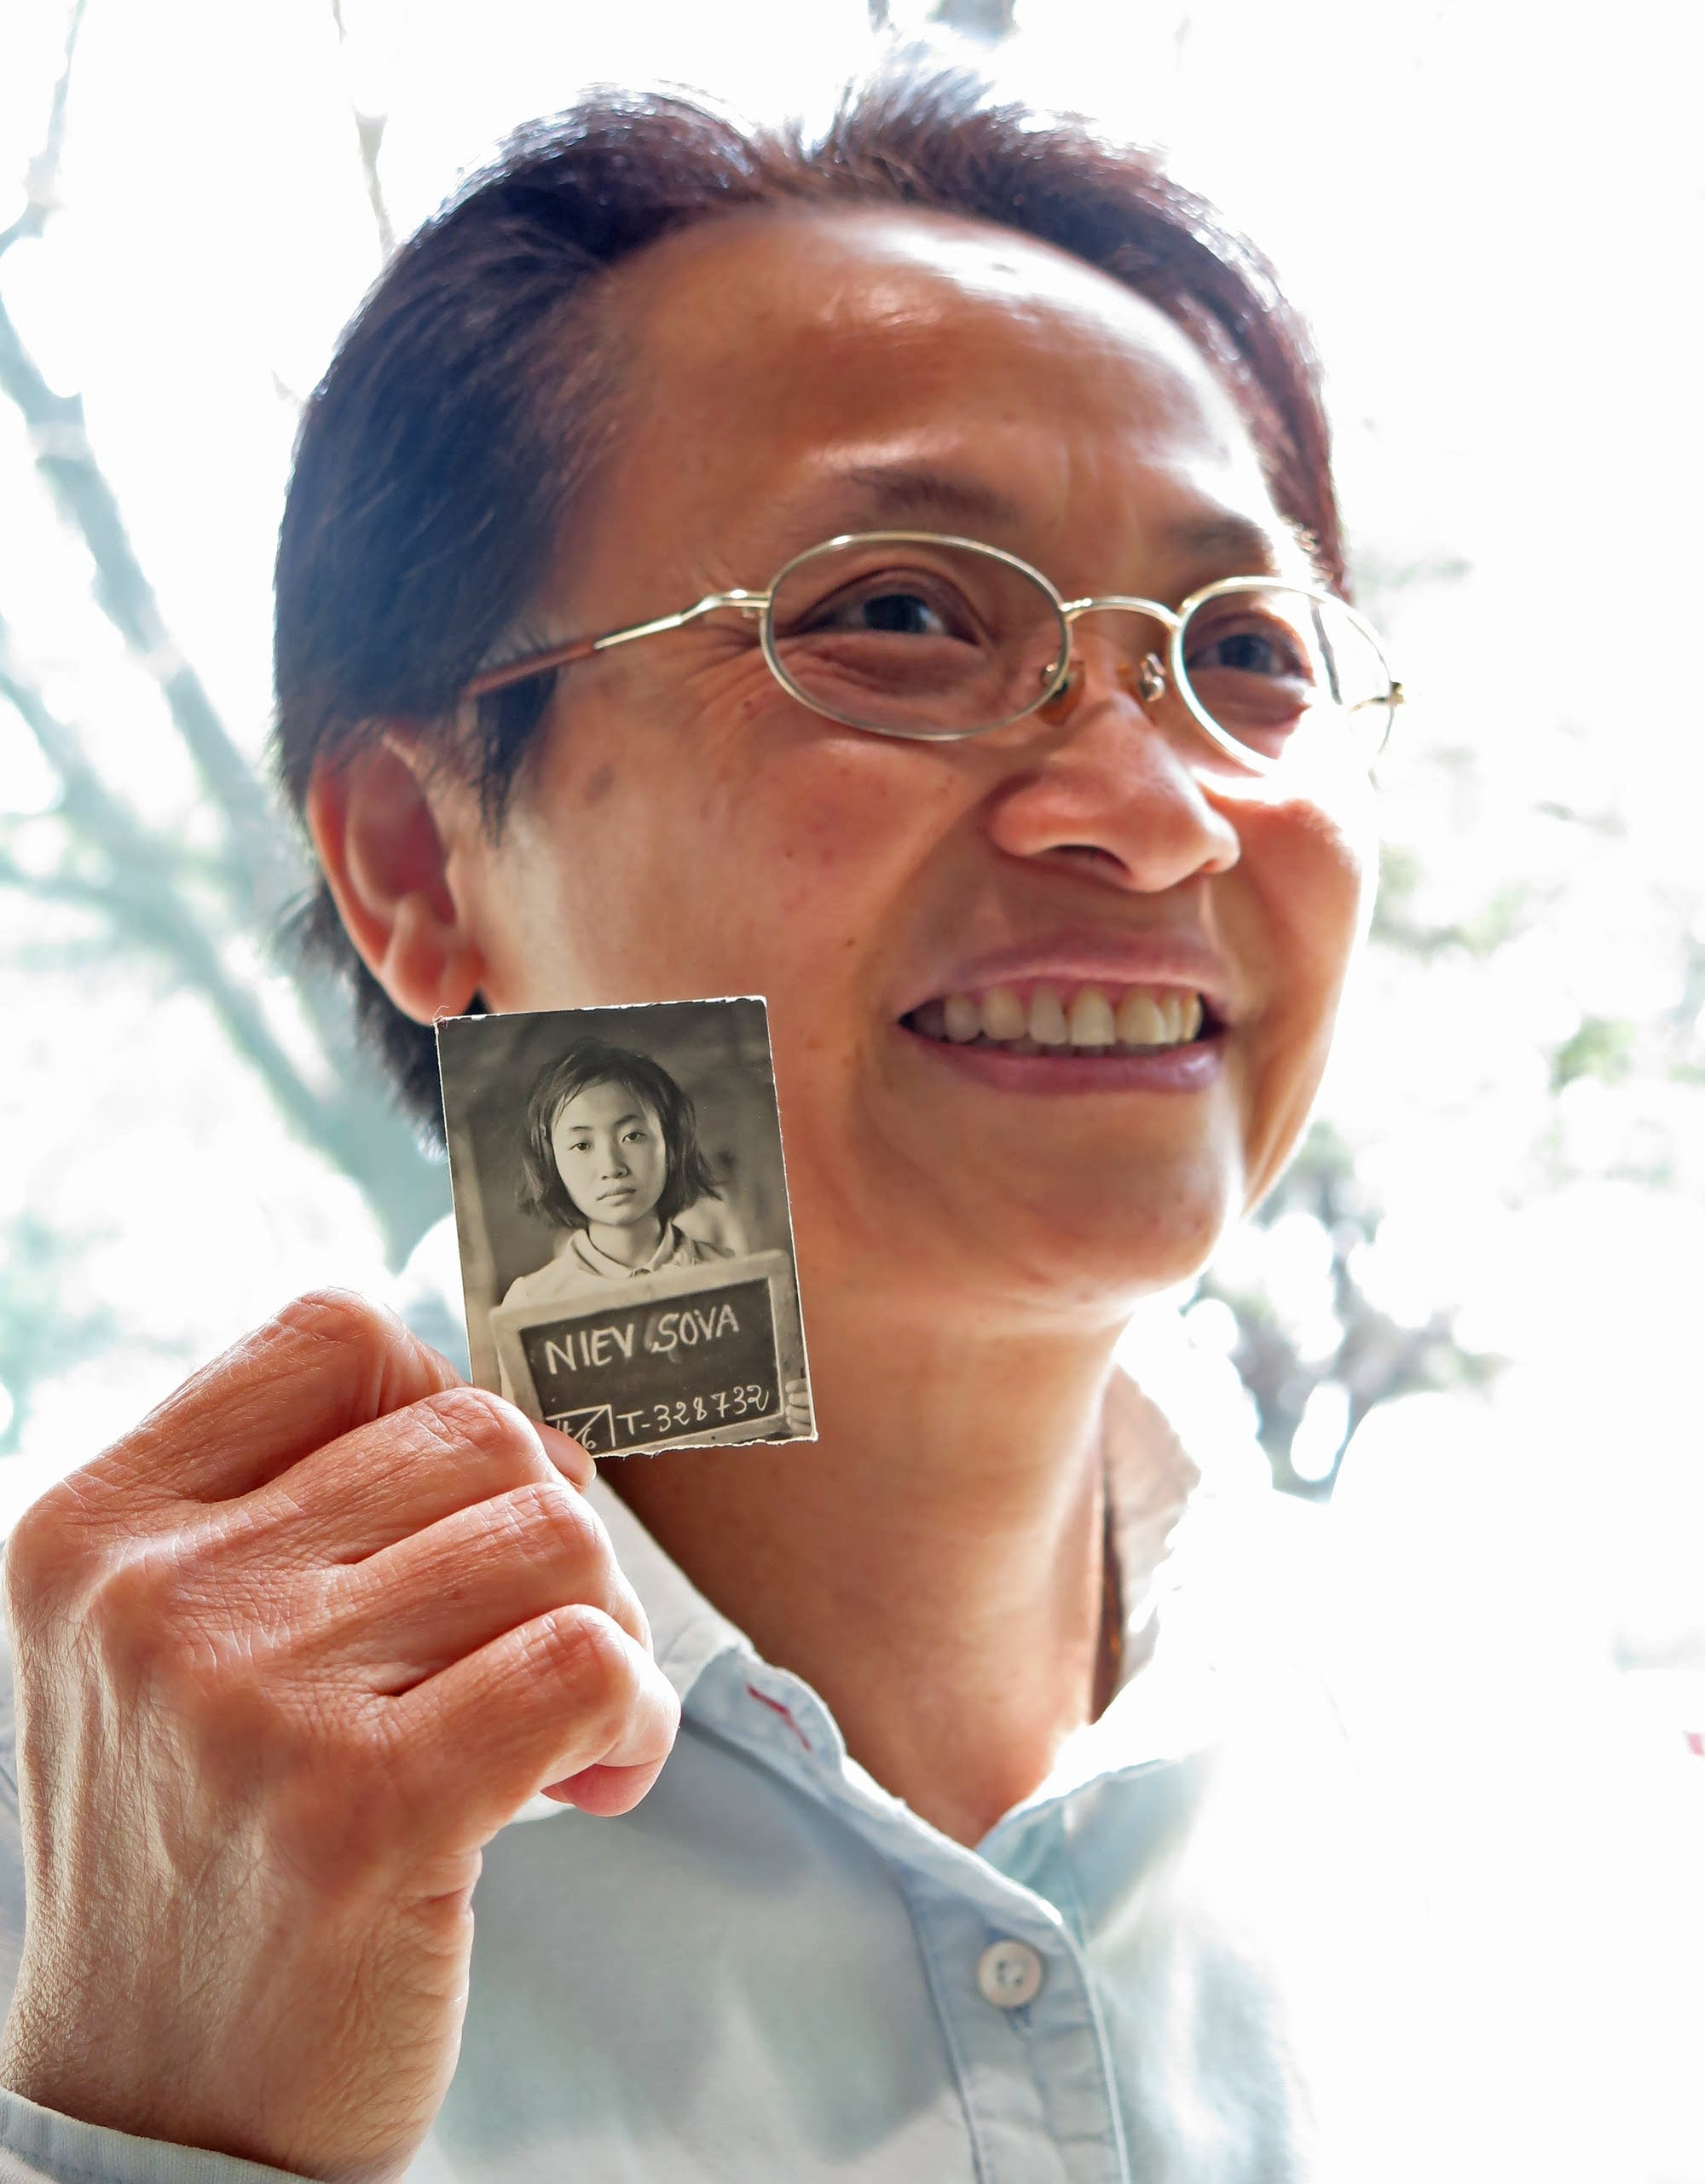 Sova Niev holds her identification photo.